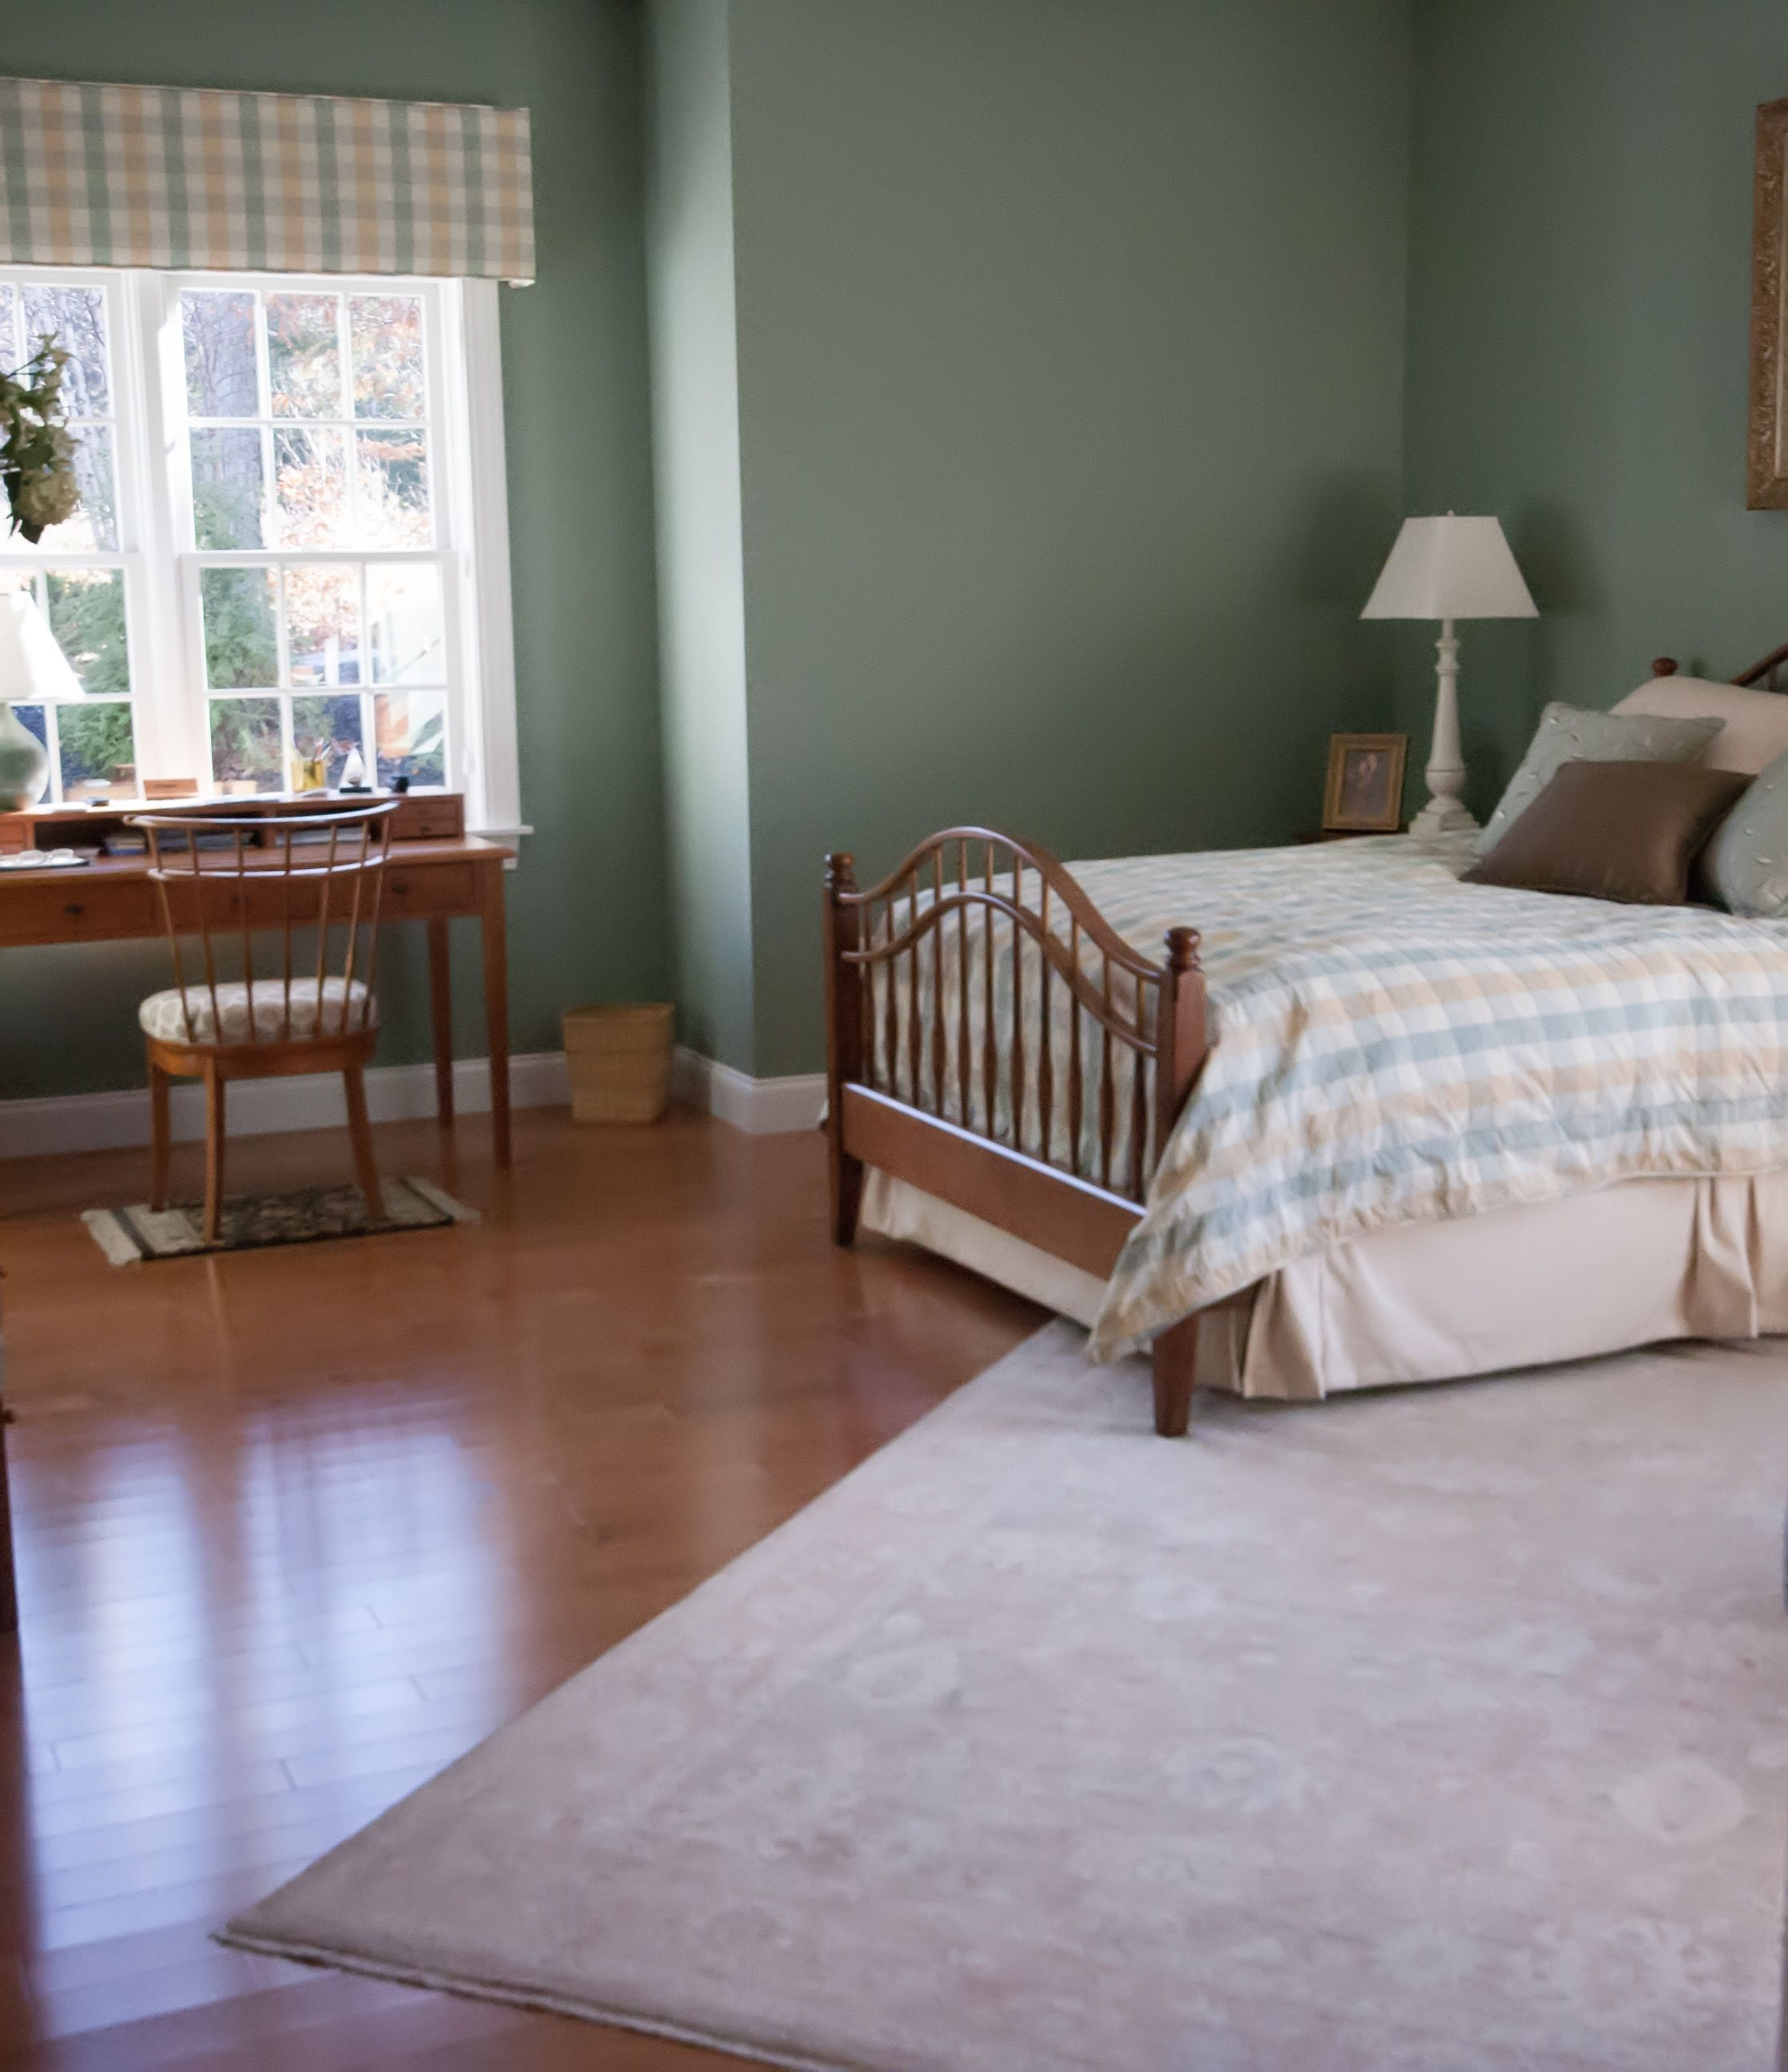 Bedroom featured in the Carmel By Davis Construction Services in Burlington, VT